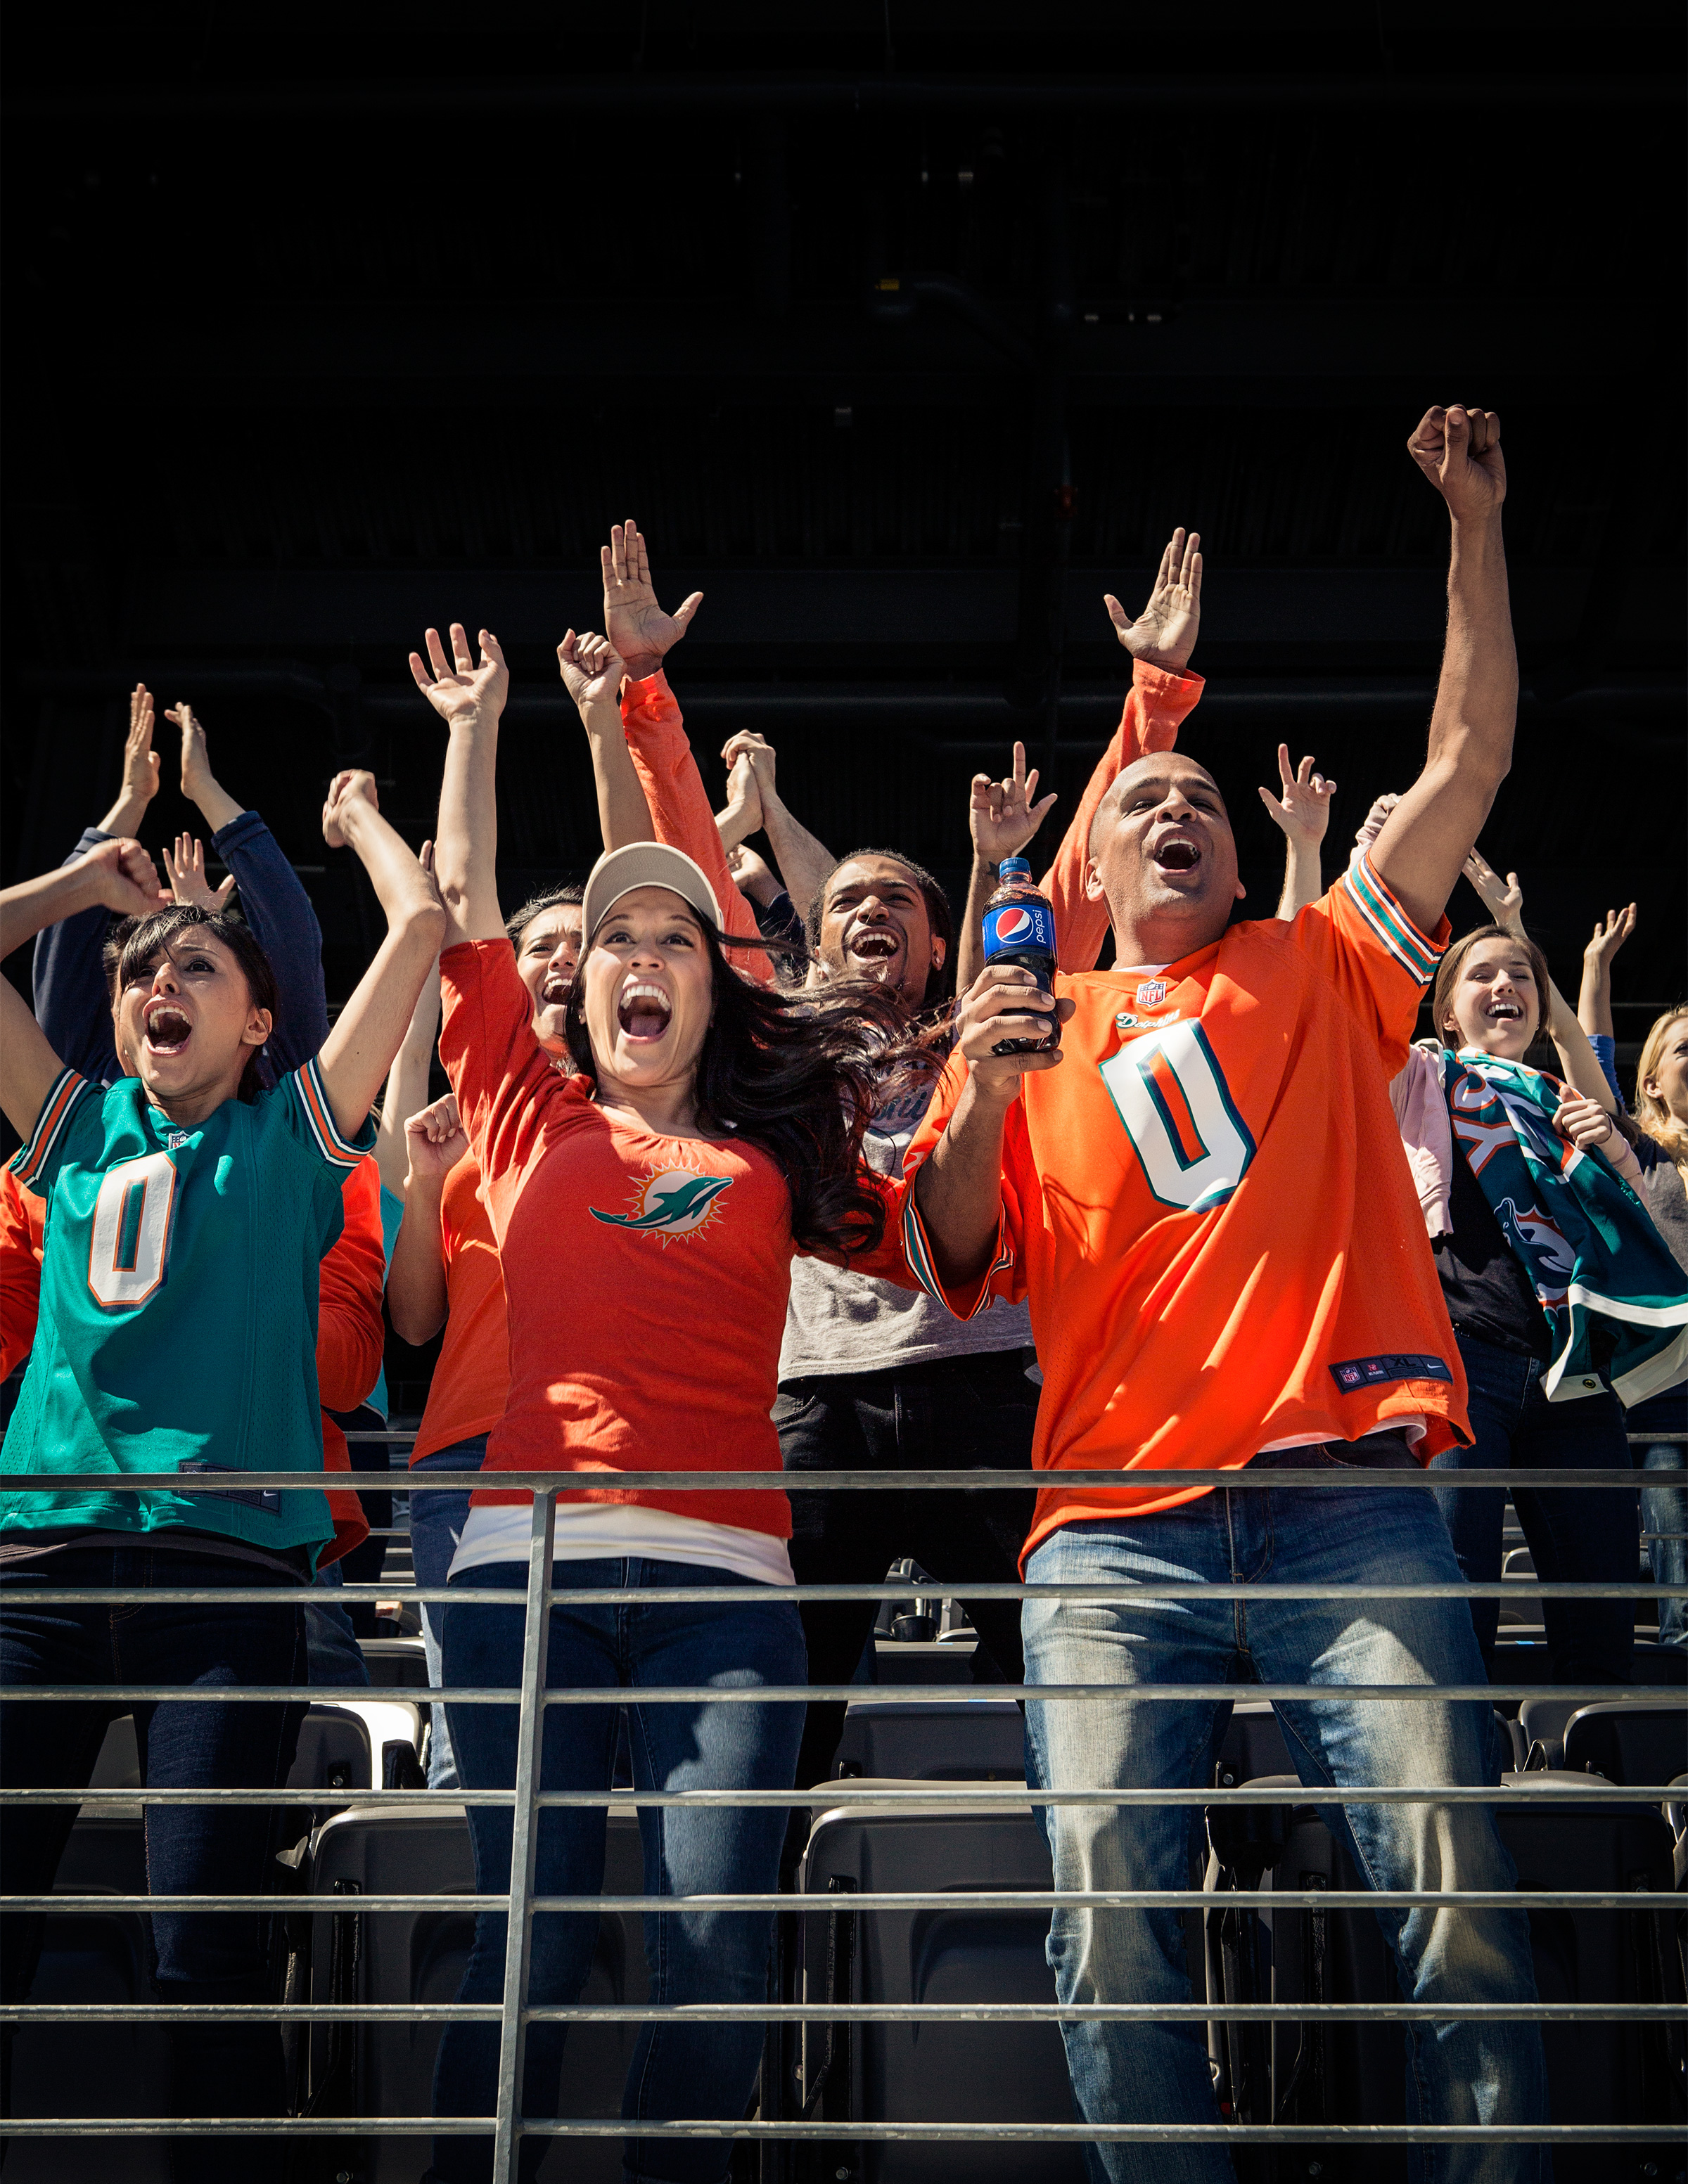 NFL_FritoLay_Fan_Group_Dolphins_Card-056-v1-1-Del